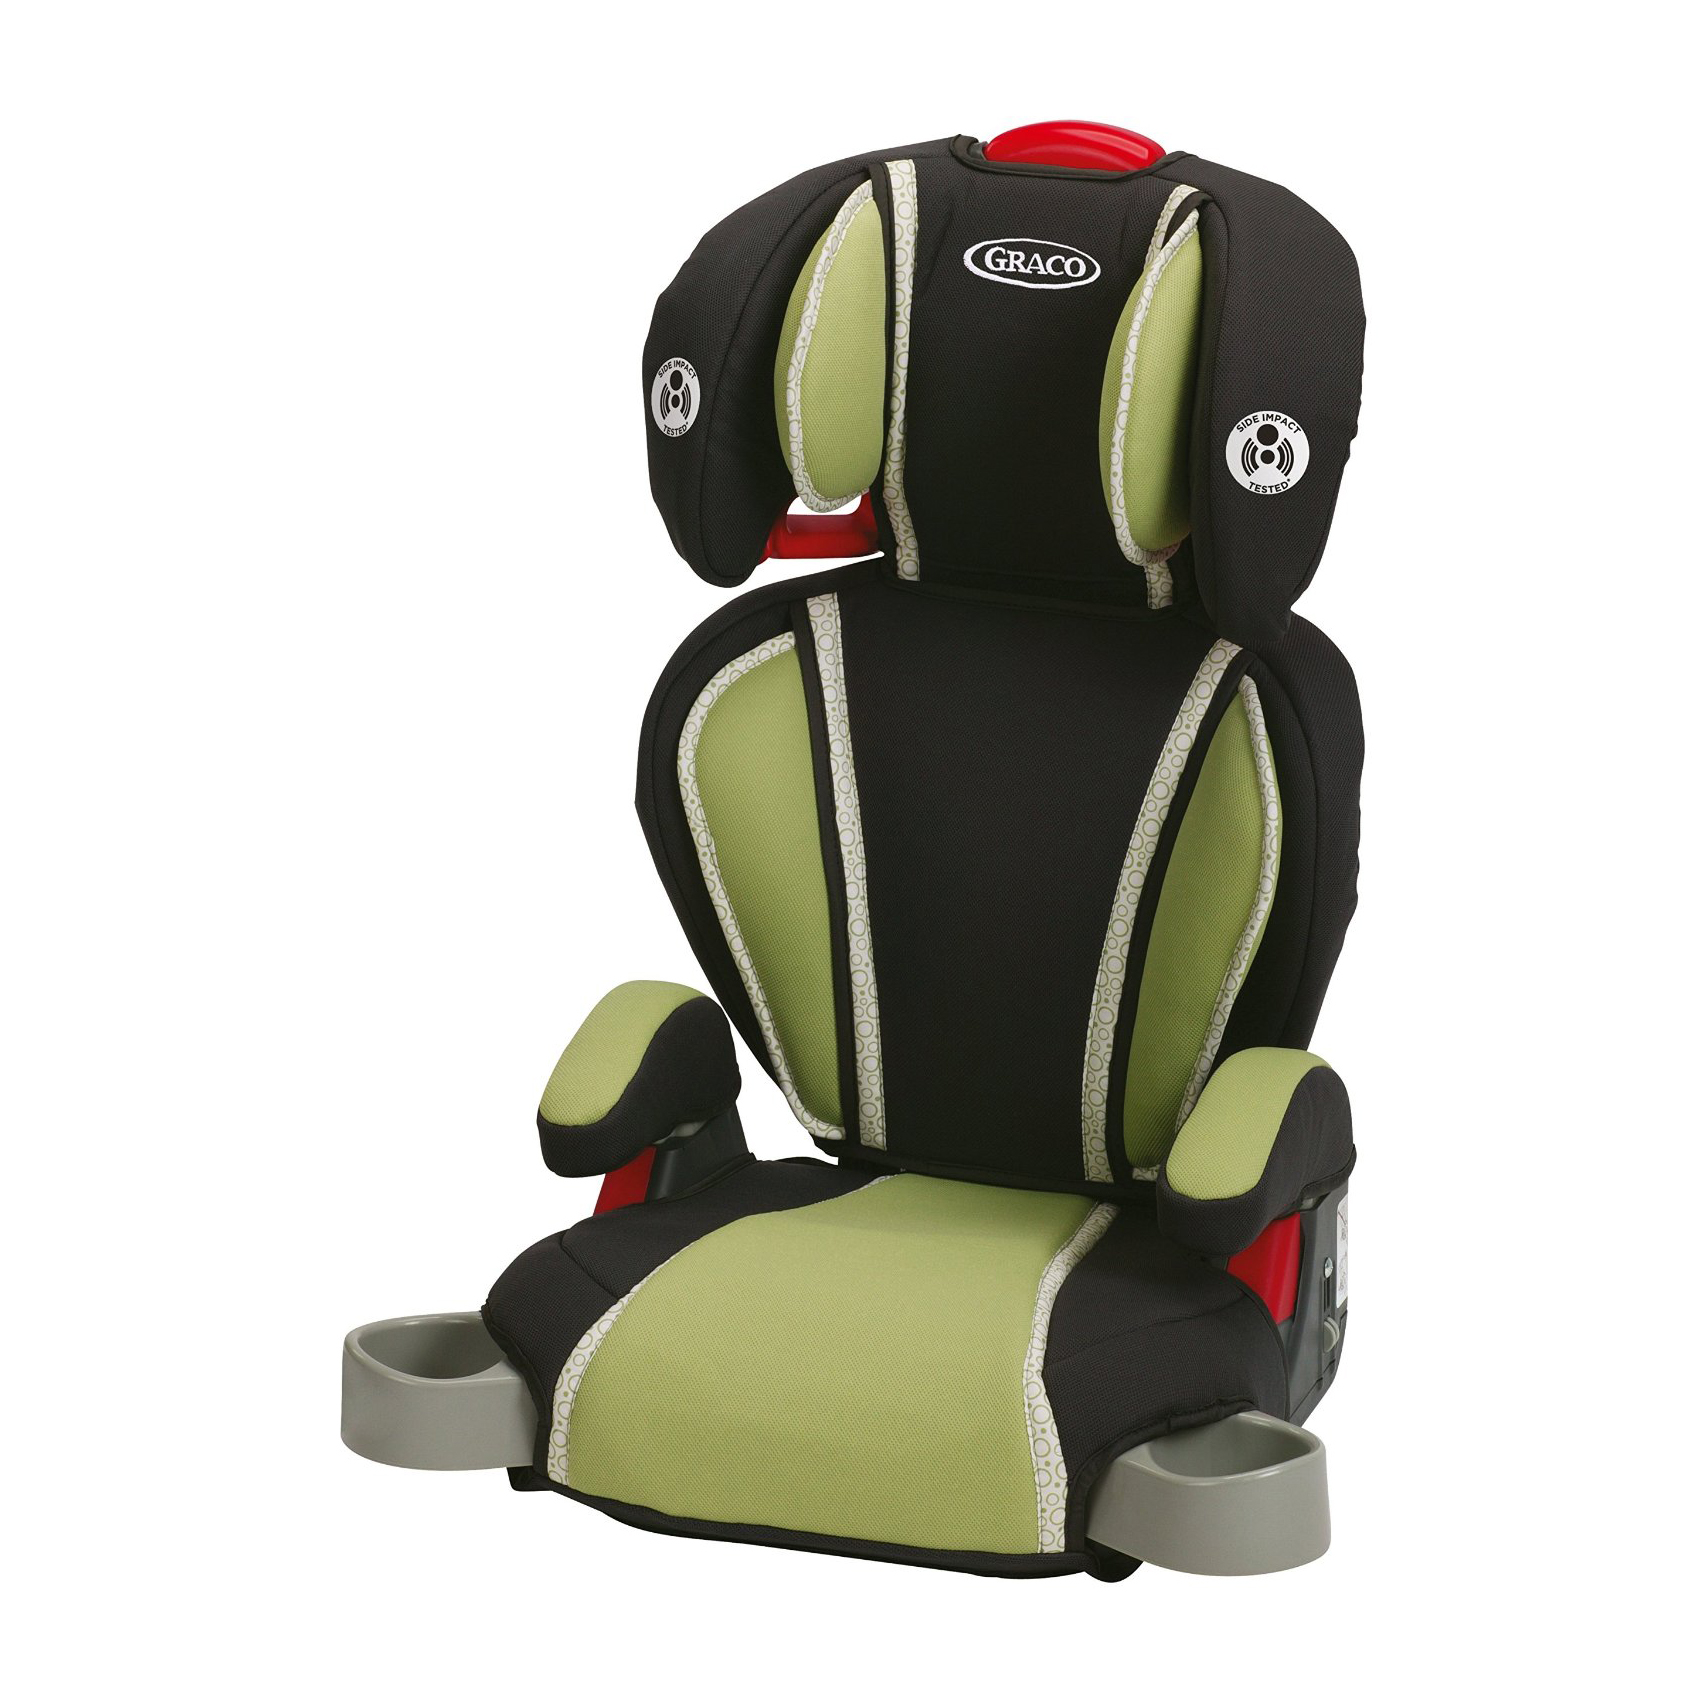 Weight Restrictions For Car Seats